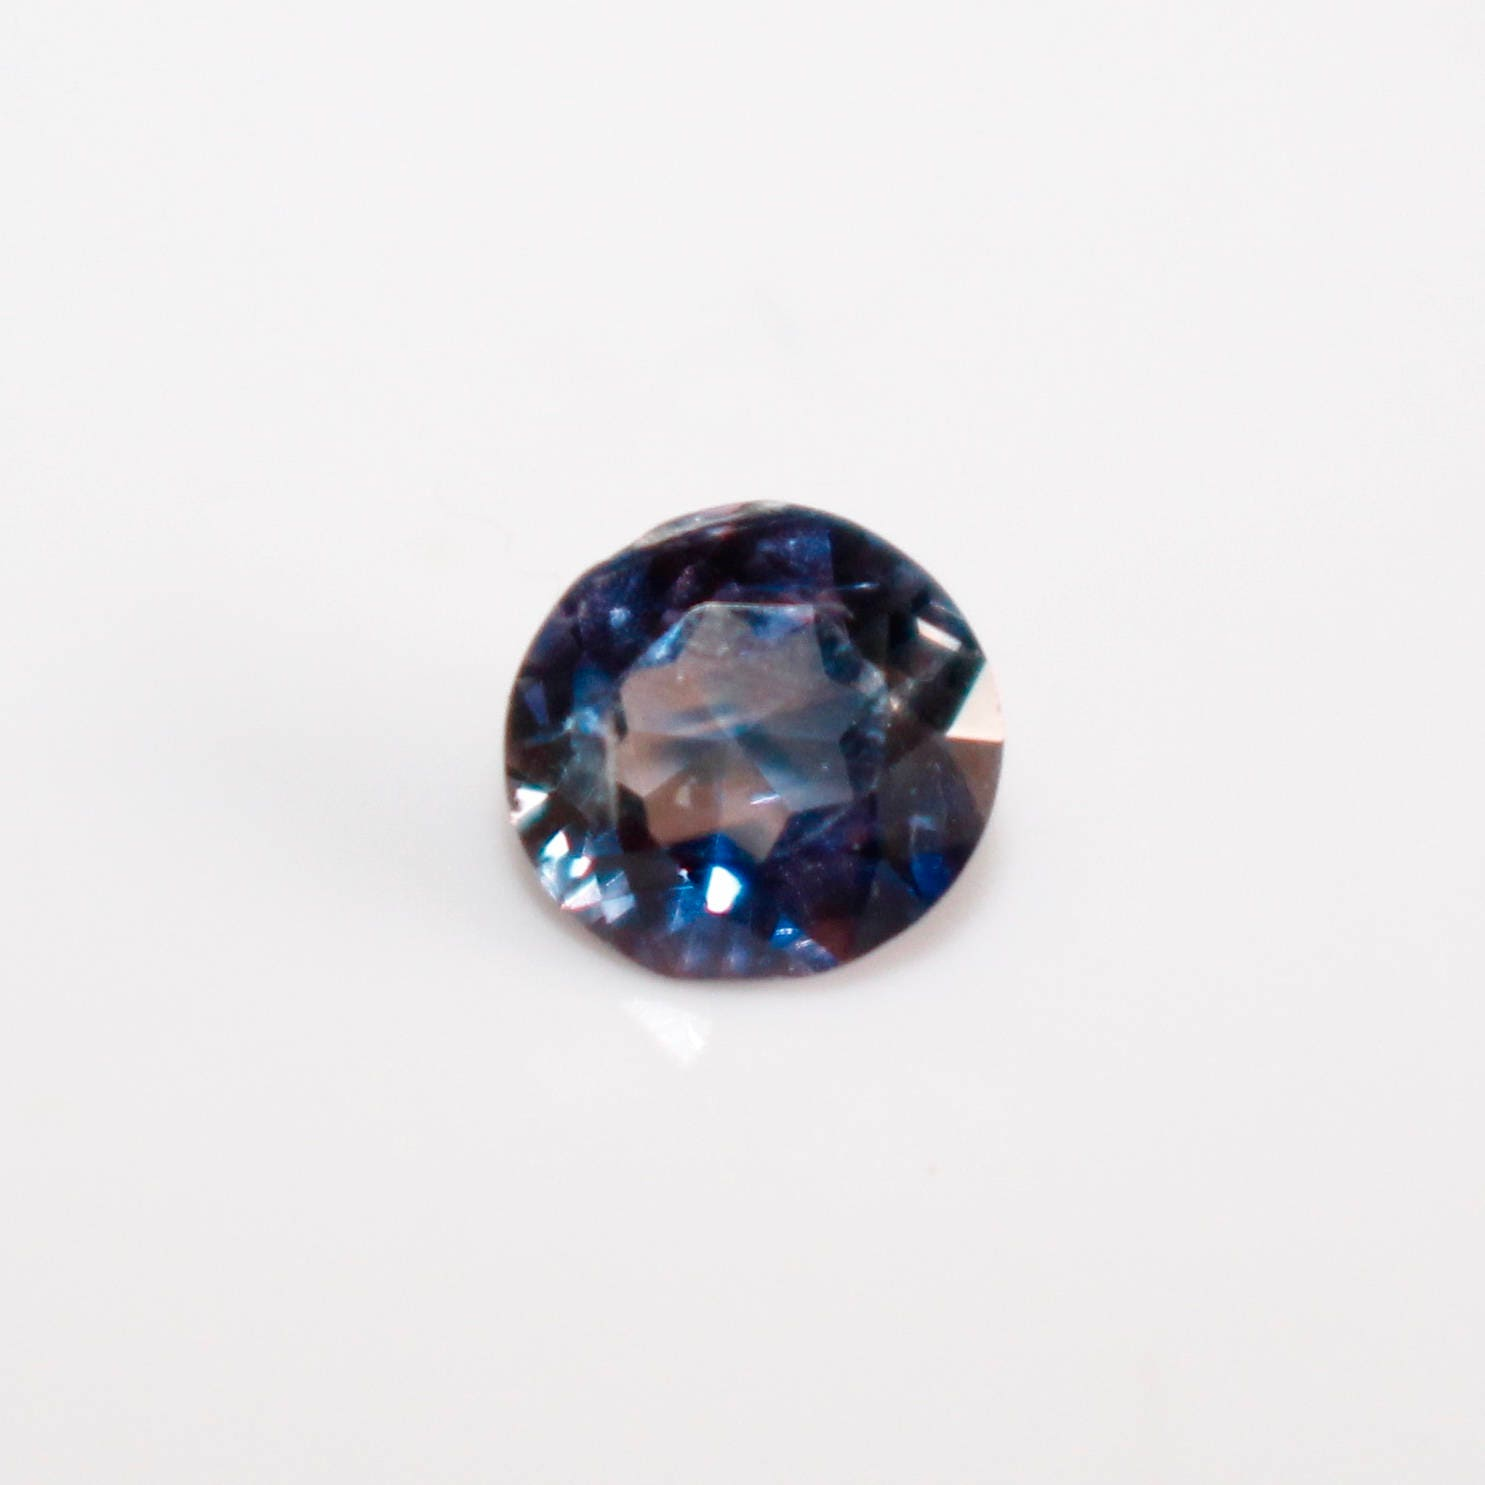 montana documented blue natural rare rough unheated gem sapphire importhubviewitem geb yogo cornflower